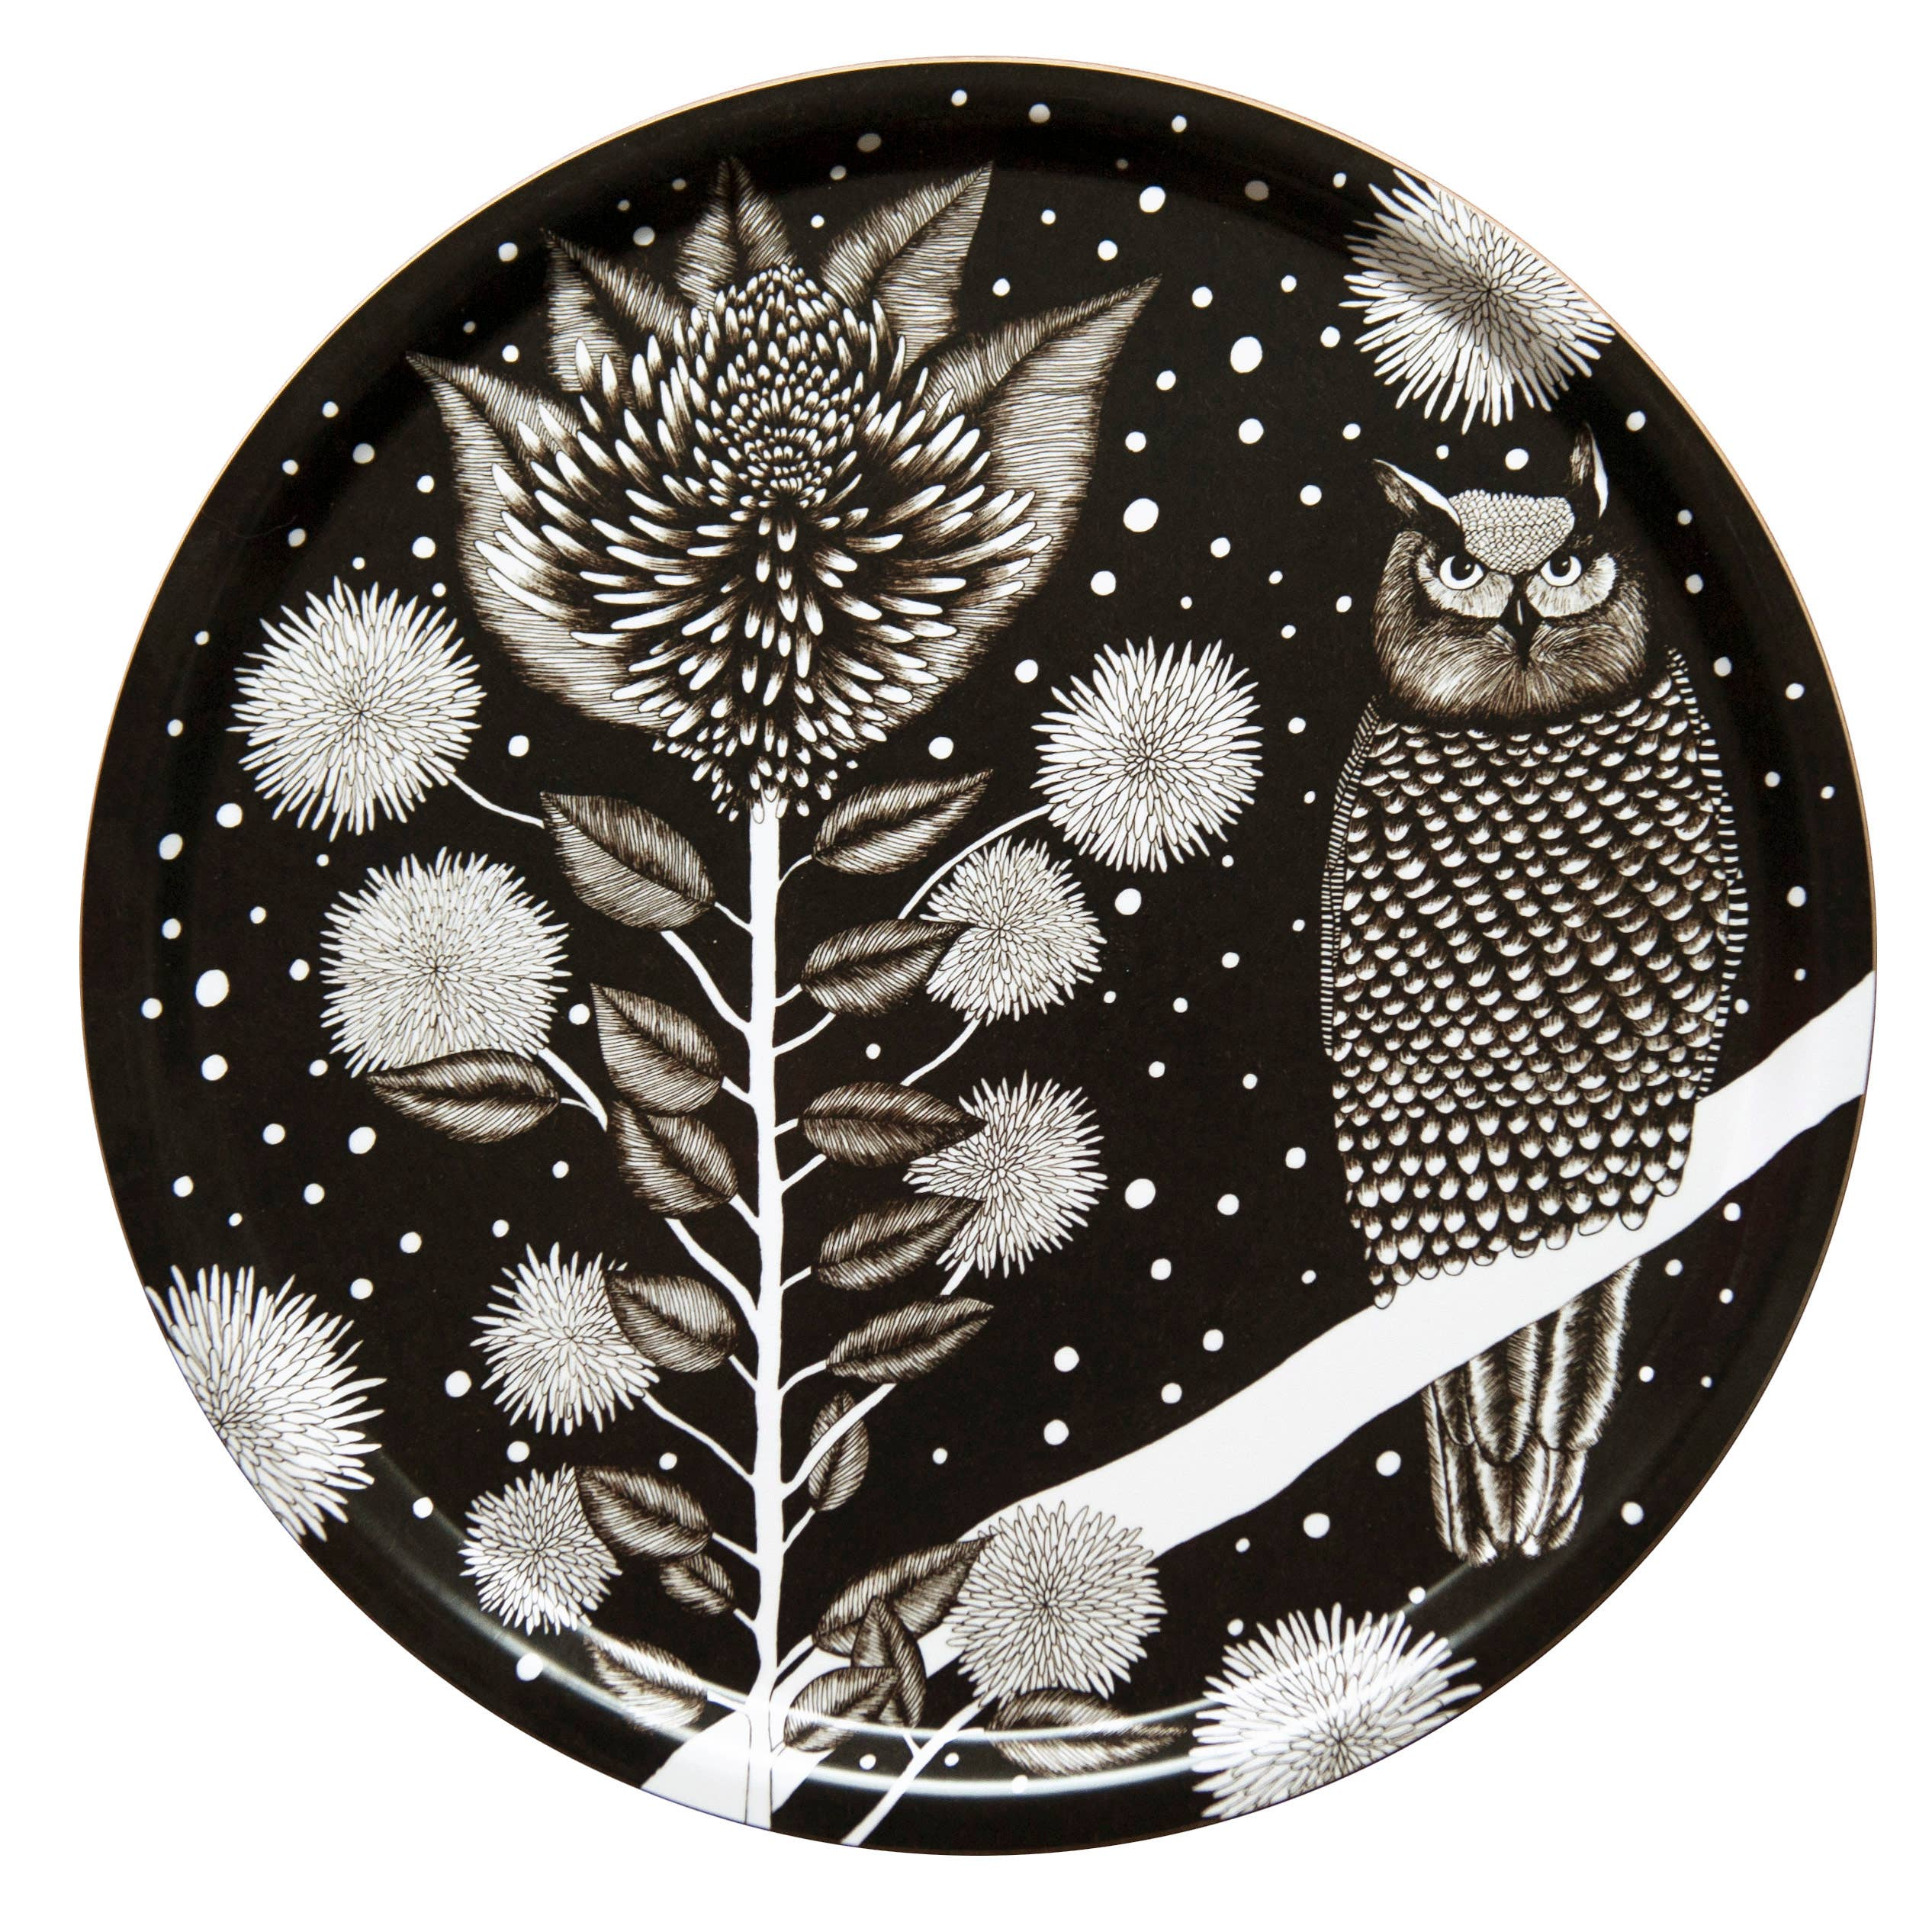 The Owl Tray